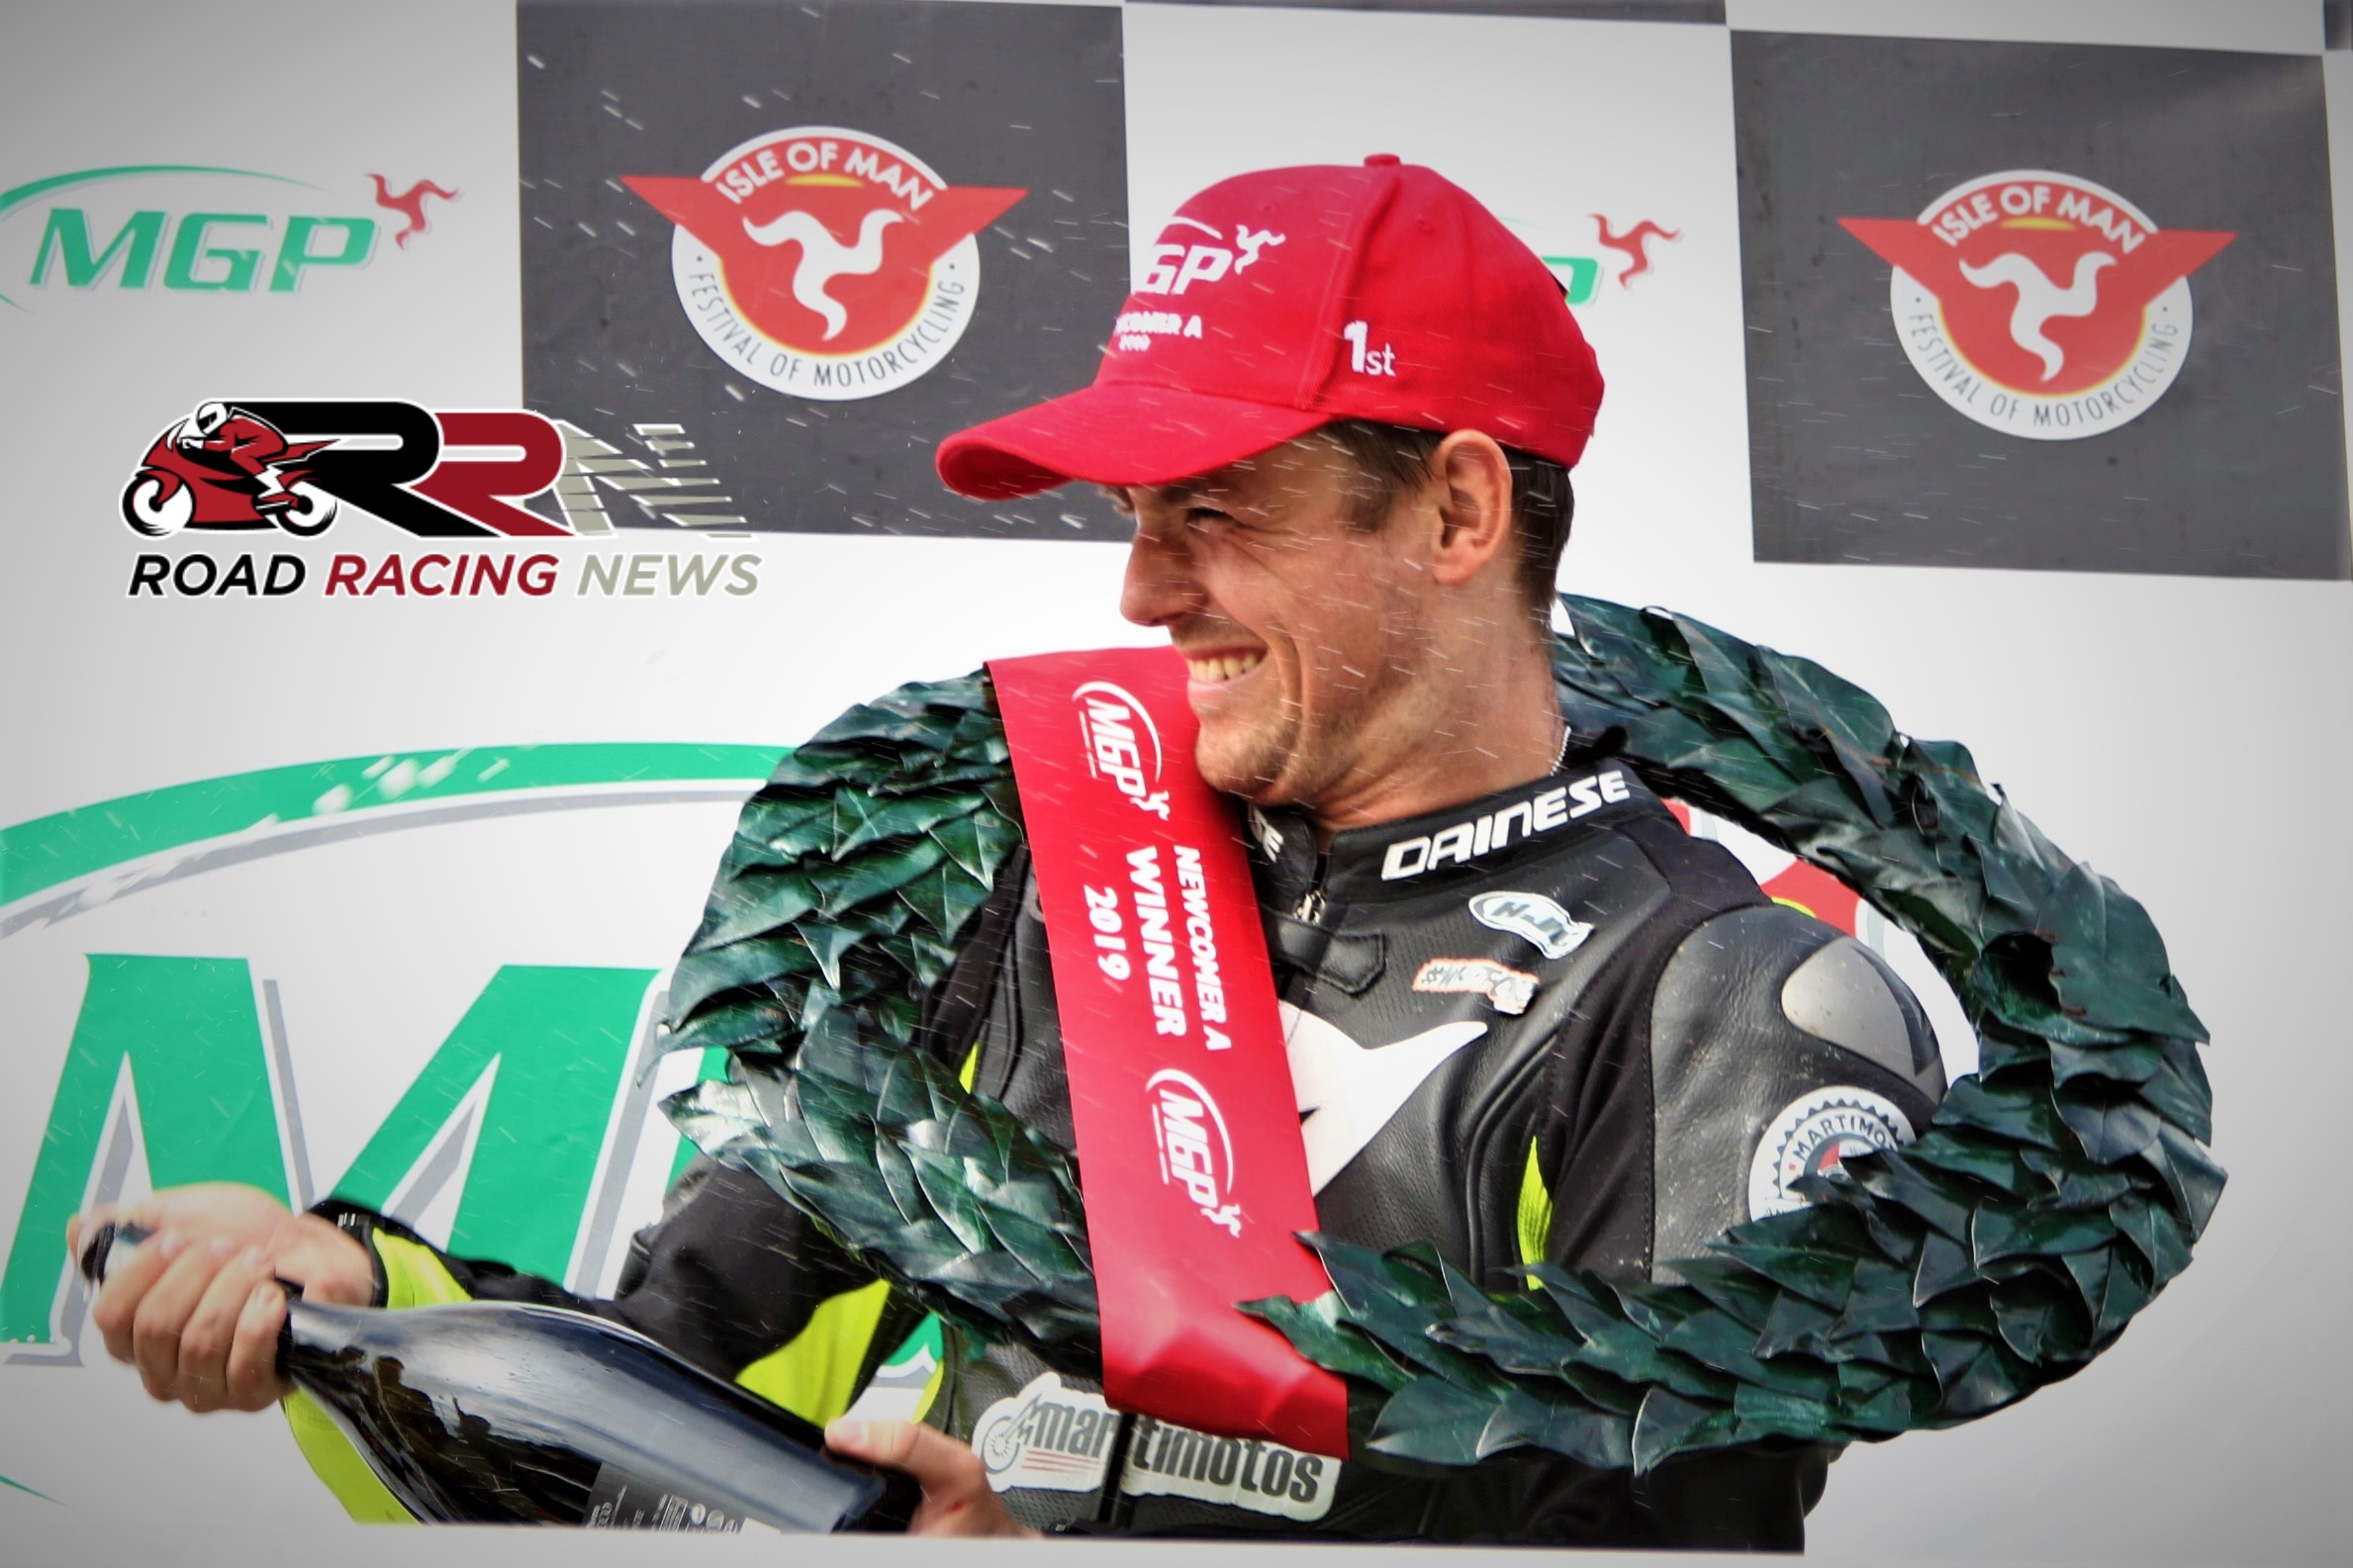 Yves Bian Takes Newcomers A Title, Becomes First French Manx GP Winner Of The 21st Century